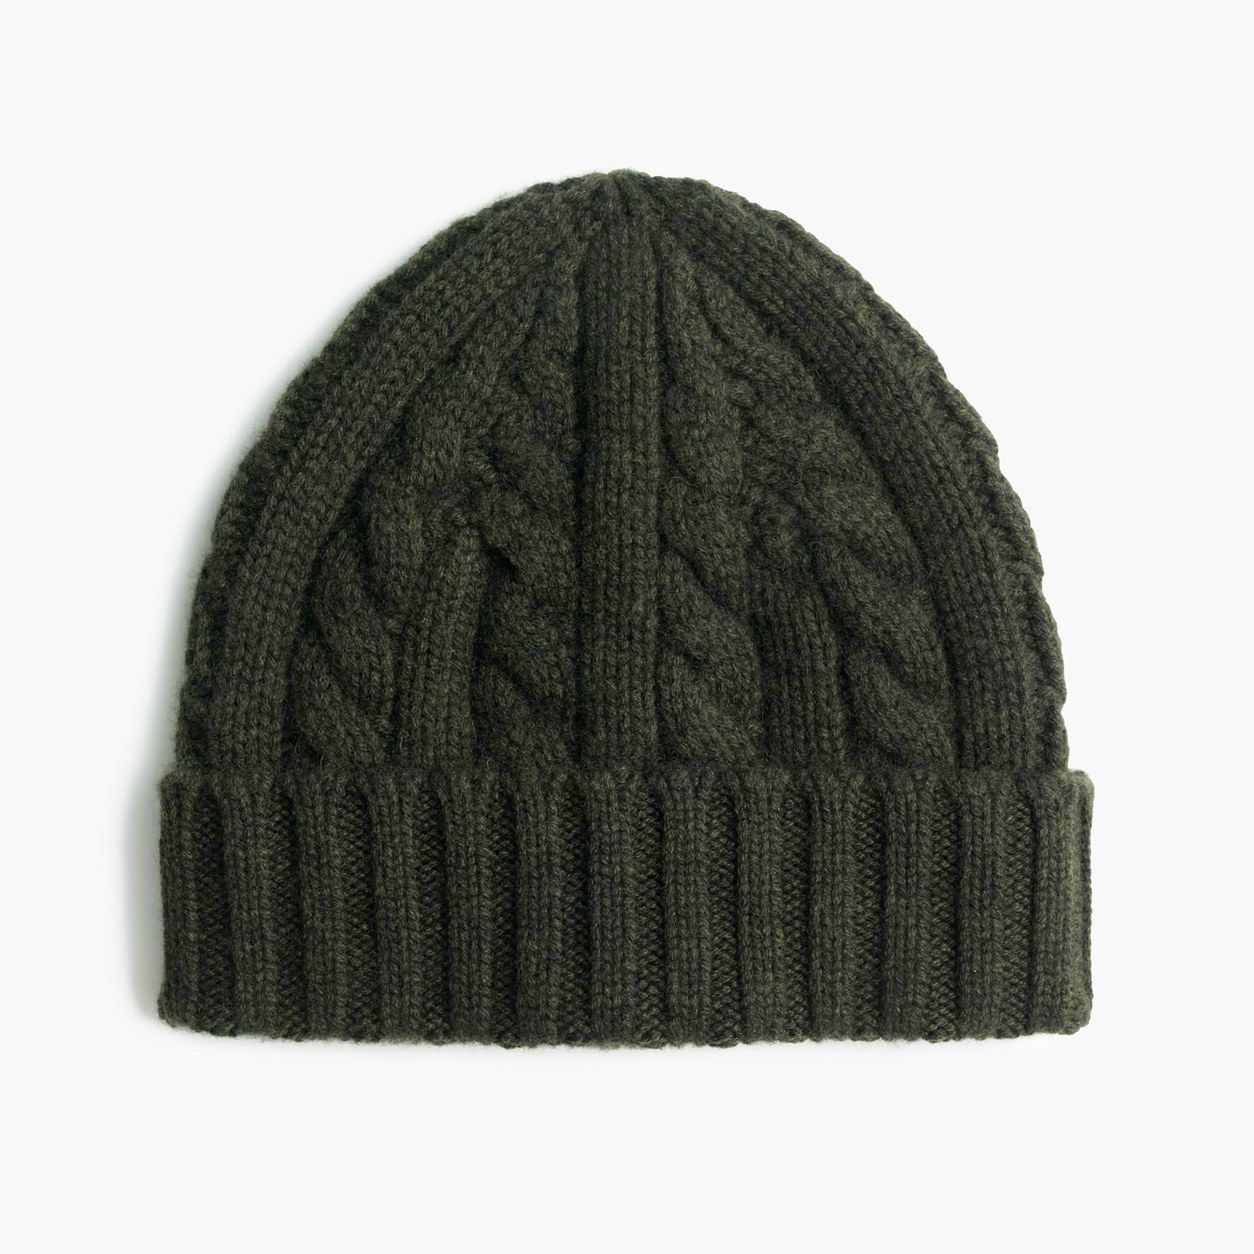 b6915dfb7 J.Crew Mens Cashmere Cable-Knit Beanie Hat | Products | Knitted hats ...